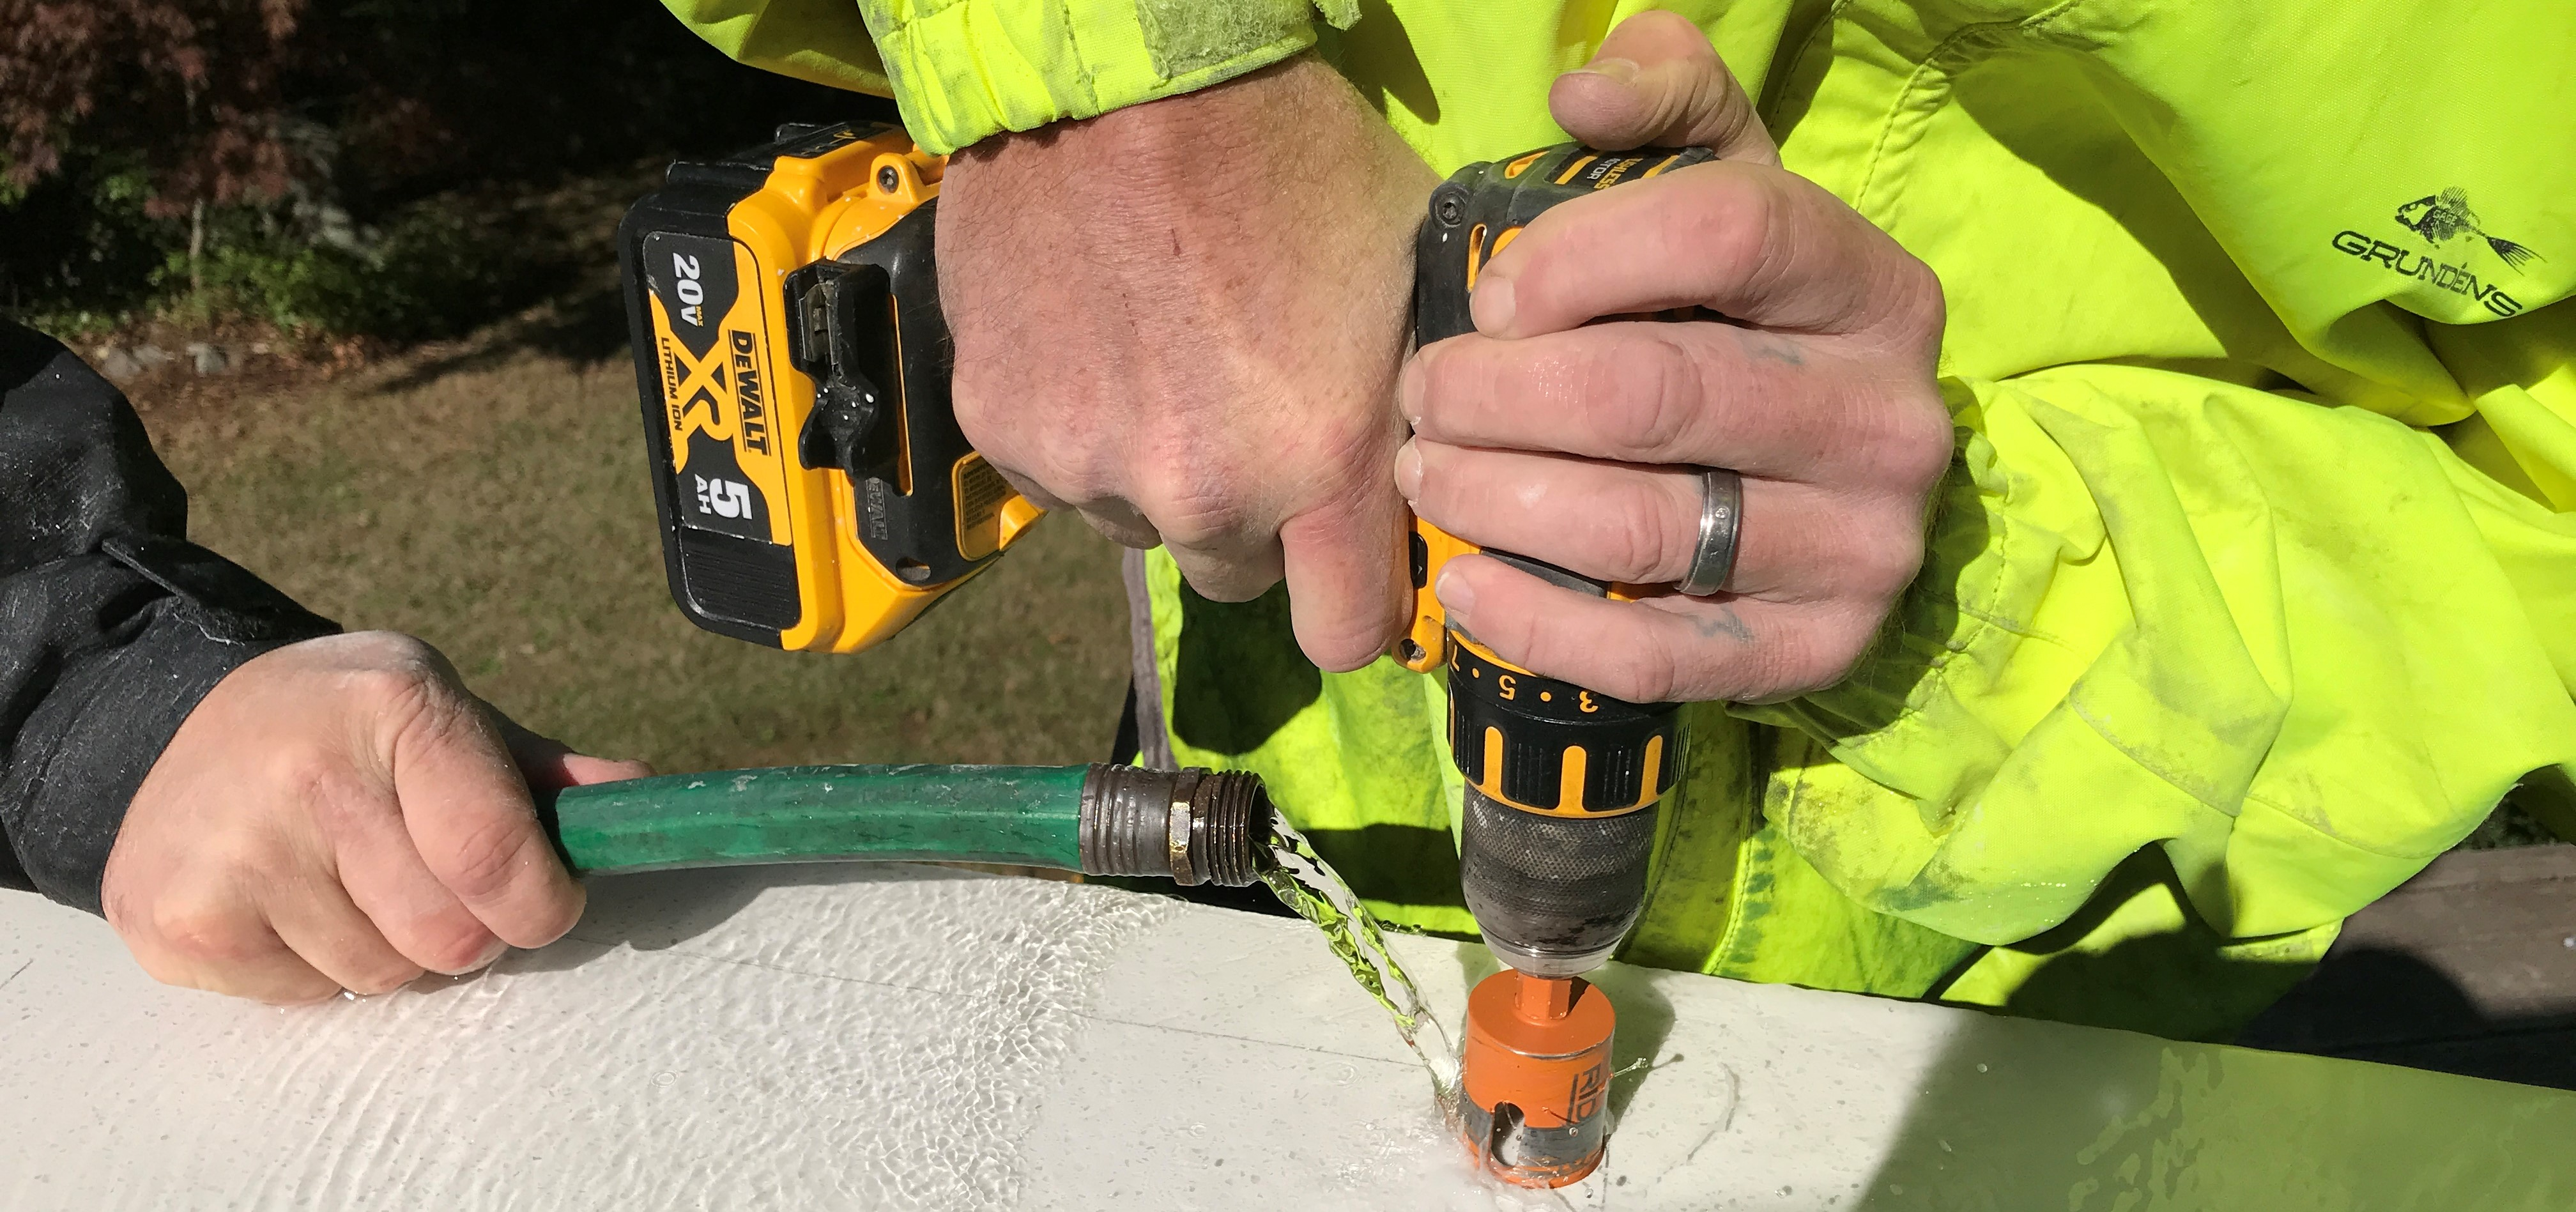 The Best Cordless Drill – Review